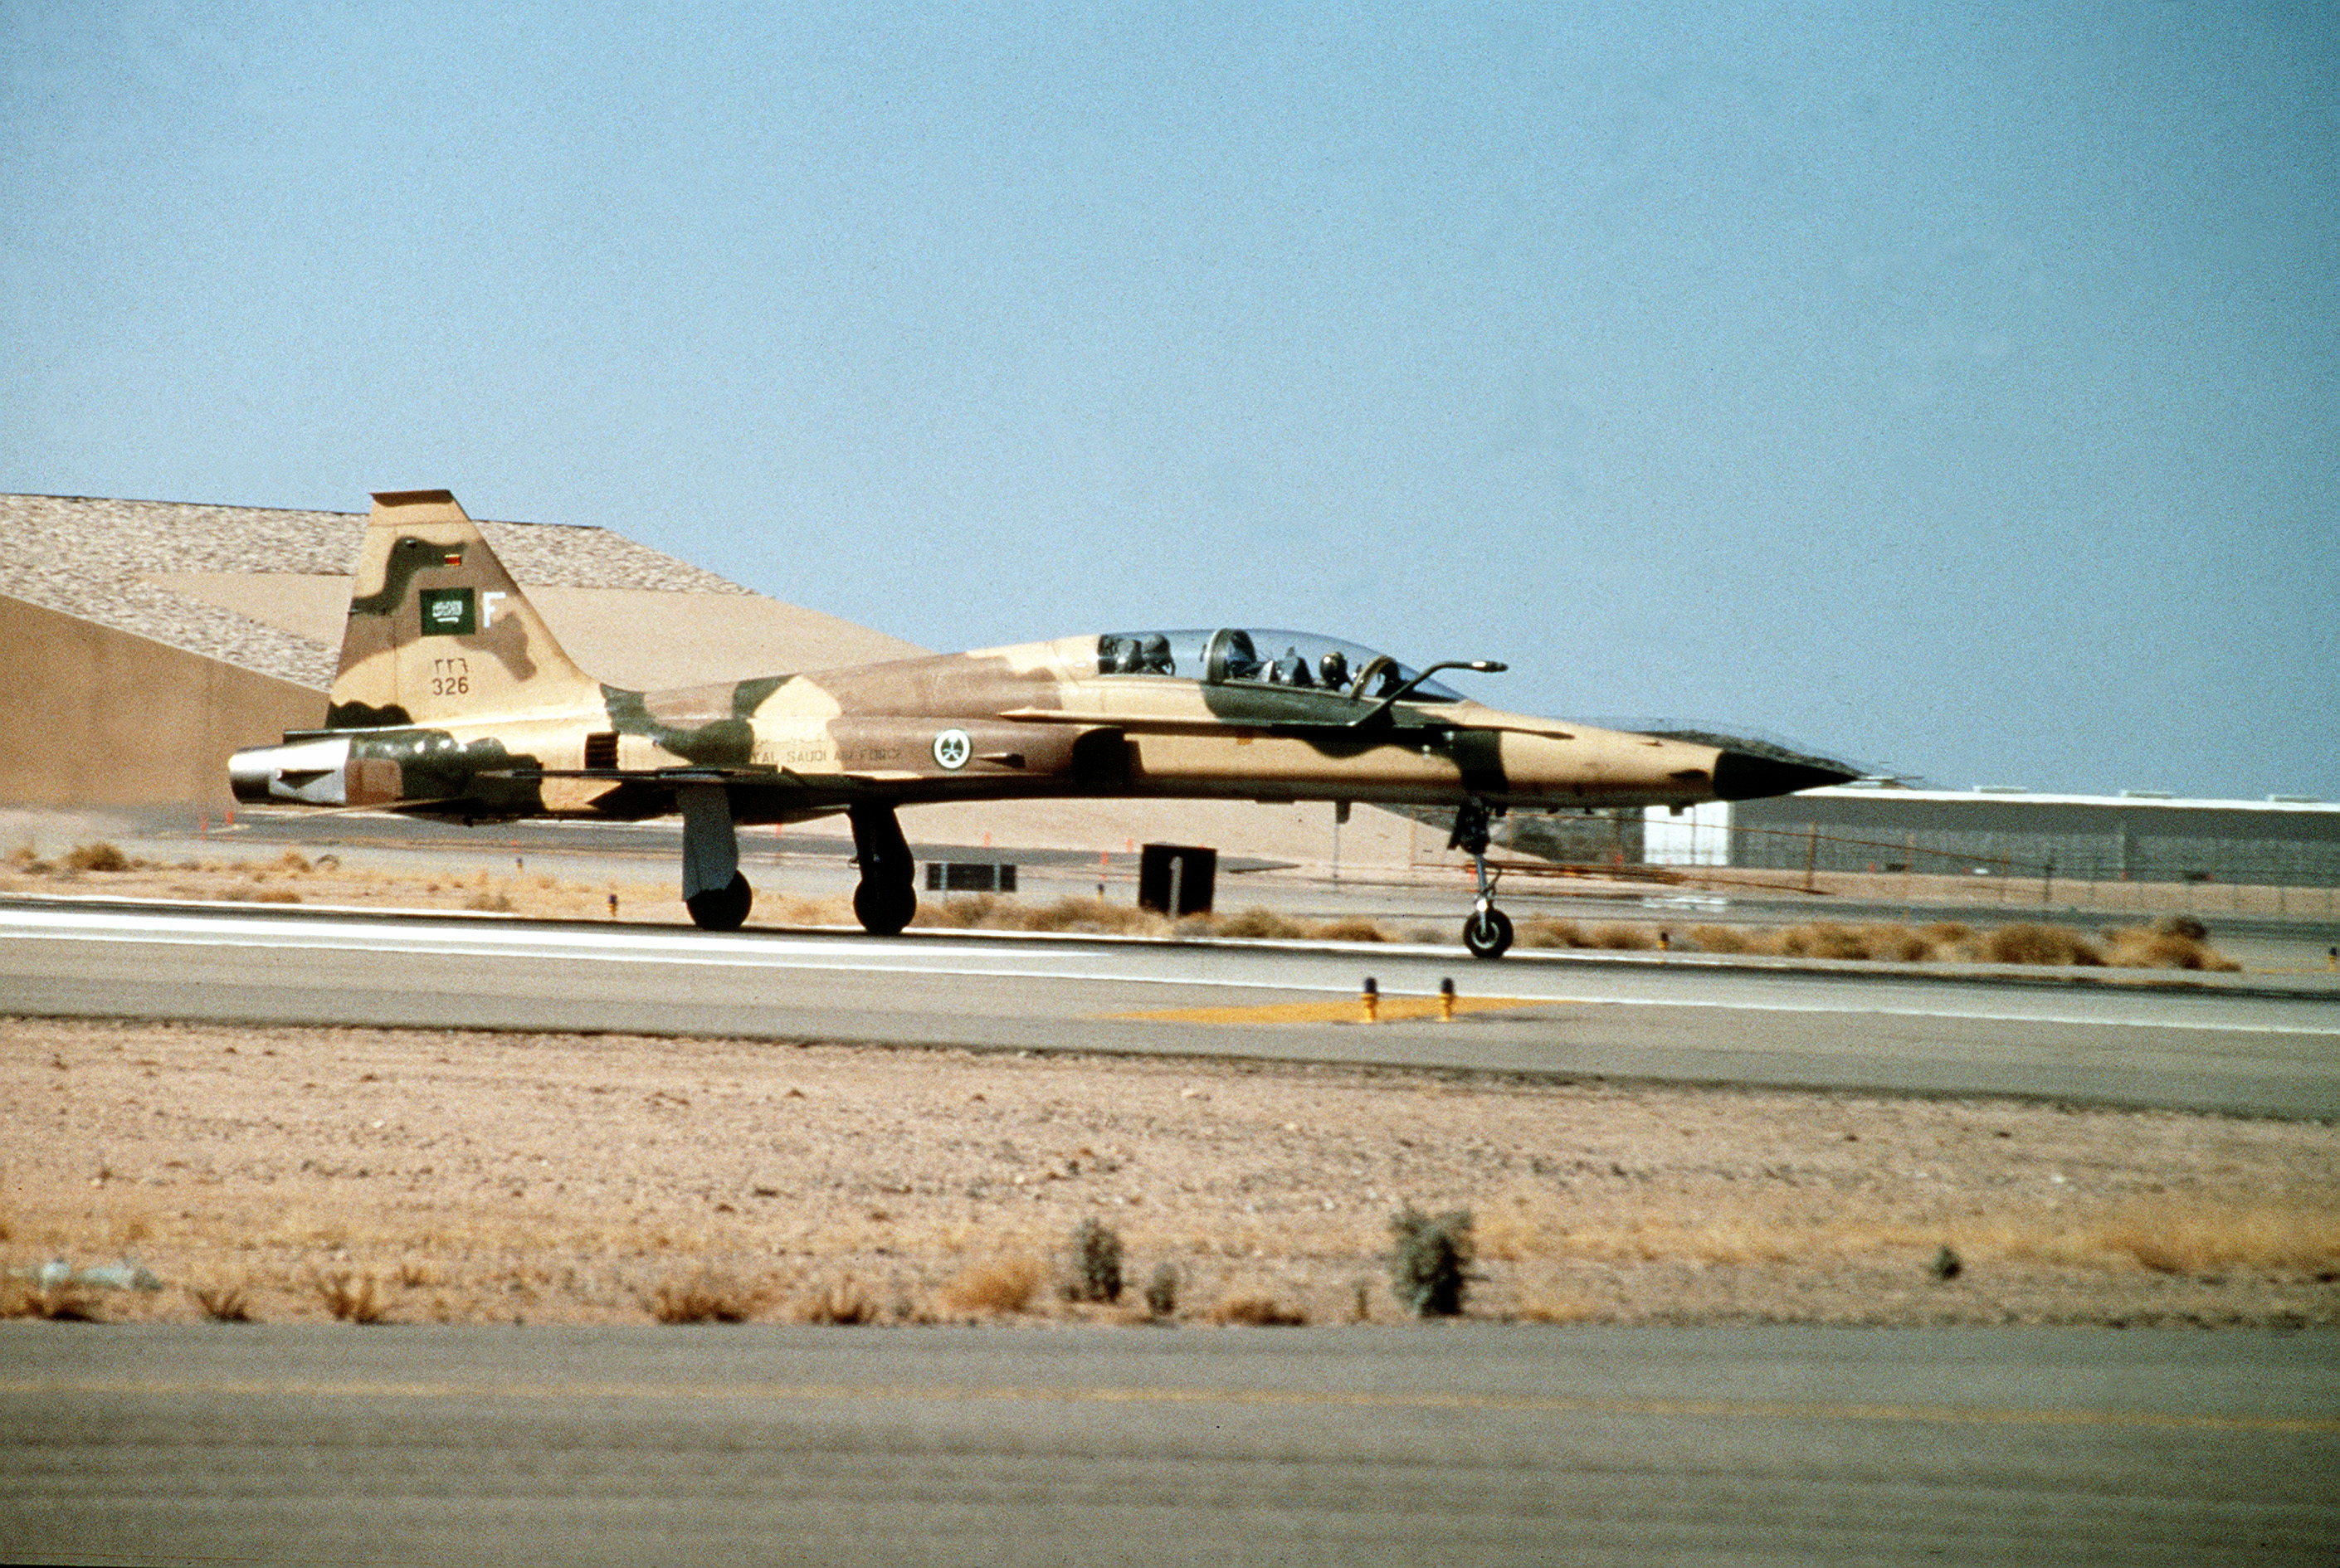 Northrop F 5 Wikipedia 1994 Ford Mustang Power Seat Wiring Diagram 5f Of Royal Saudi Air Force Taking Off